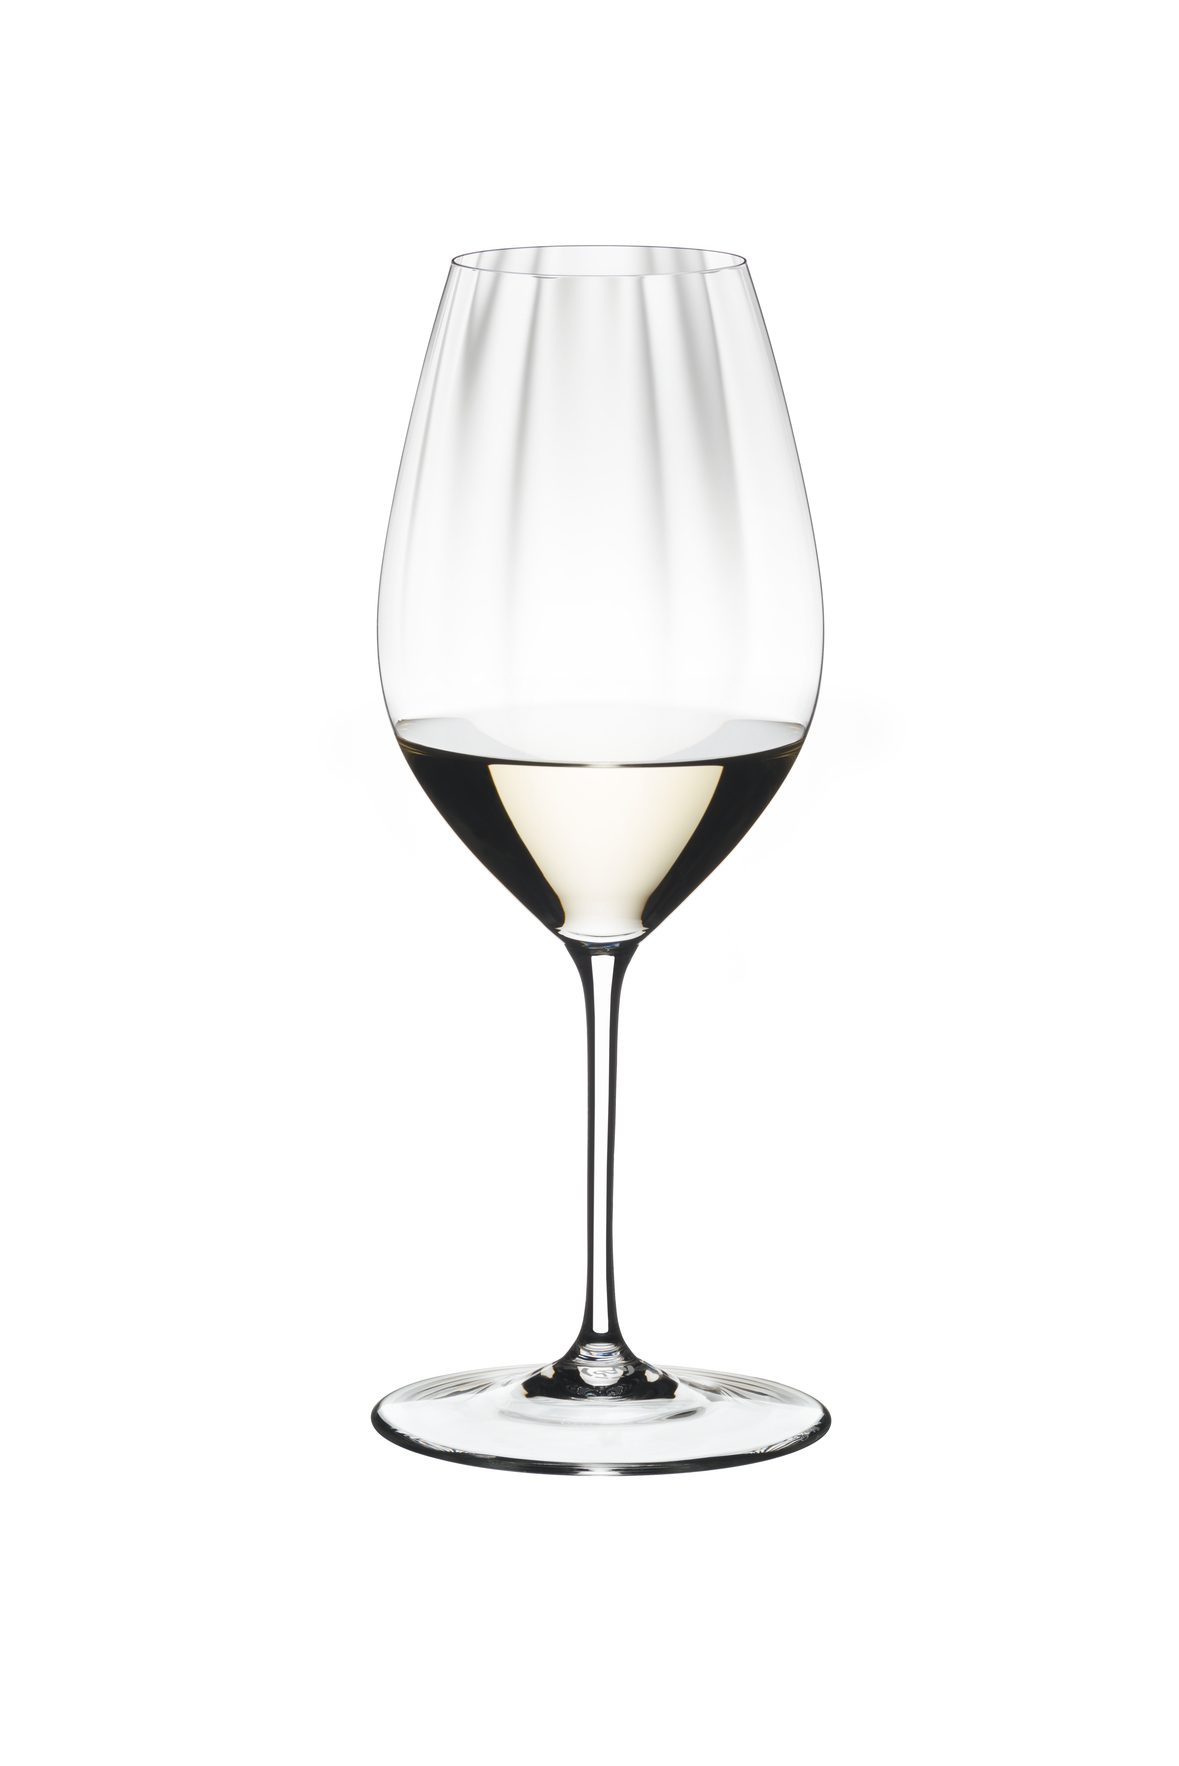 Riedel Performance Riesling 623 ccm